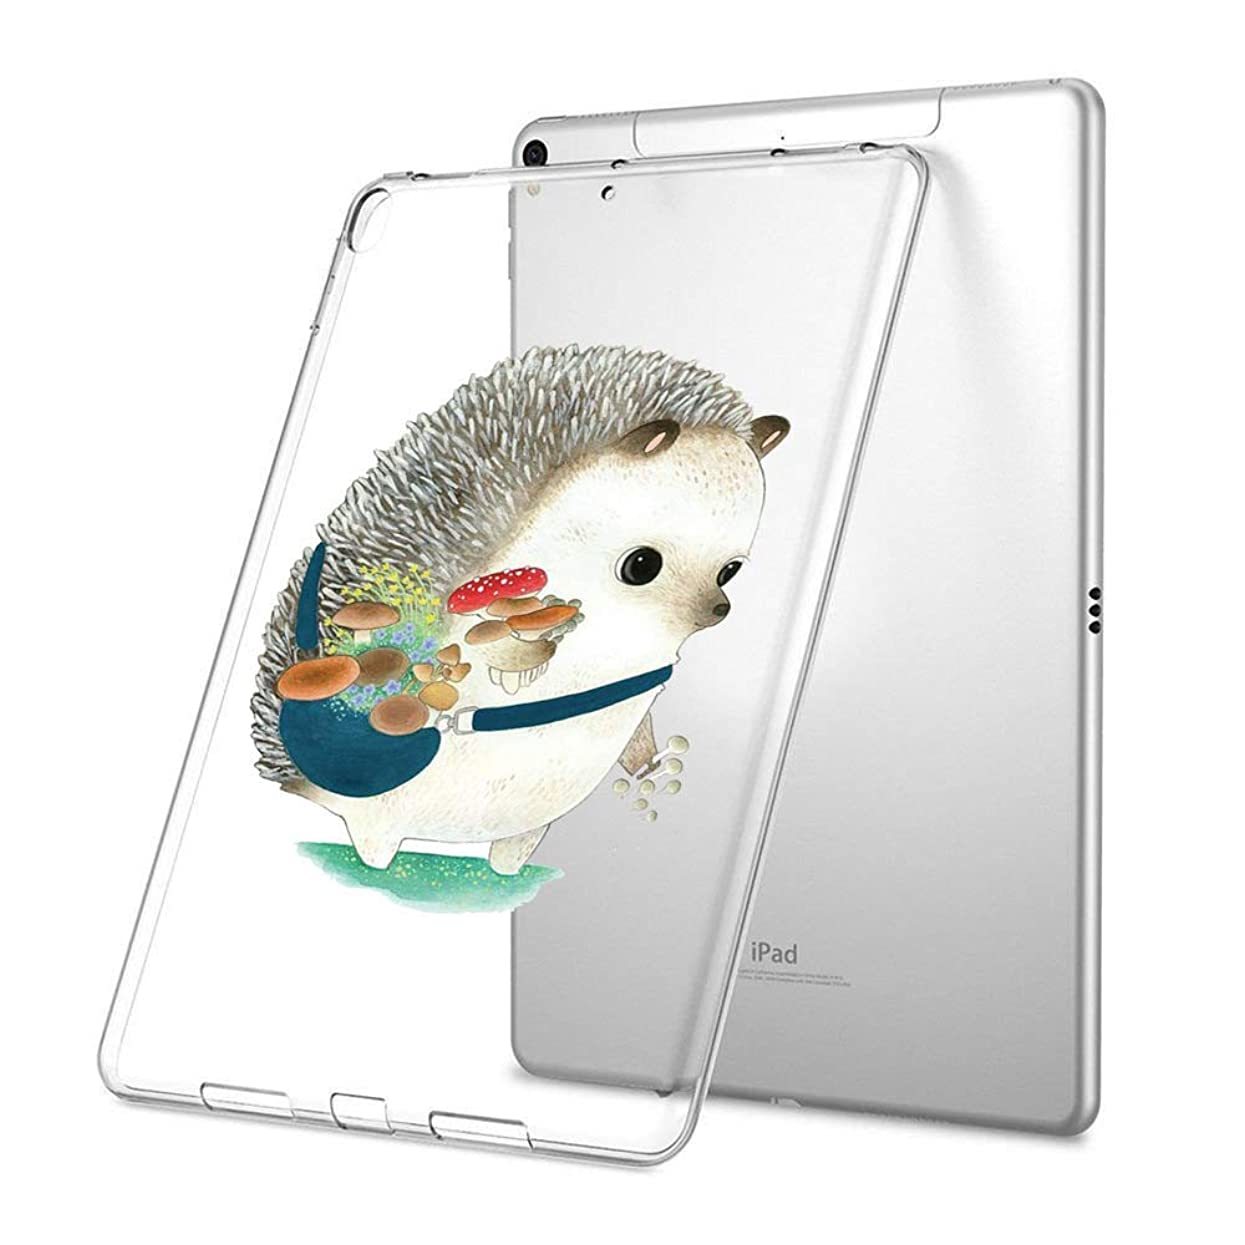 GinHo Customized Protective Cover with Slim Soft Durable TPU Ultra-Clear Silicone UV Printing Case for Cute Hedgehog iPad Air 2 x09735353714598